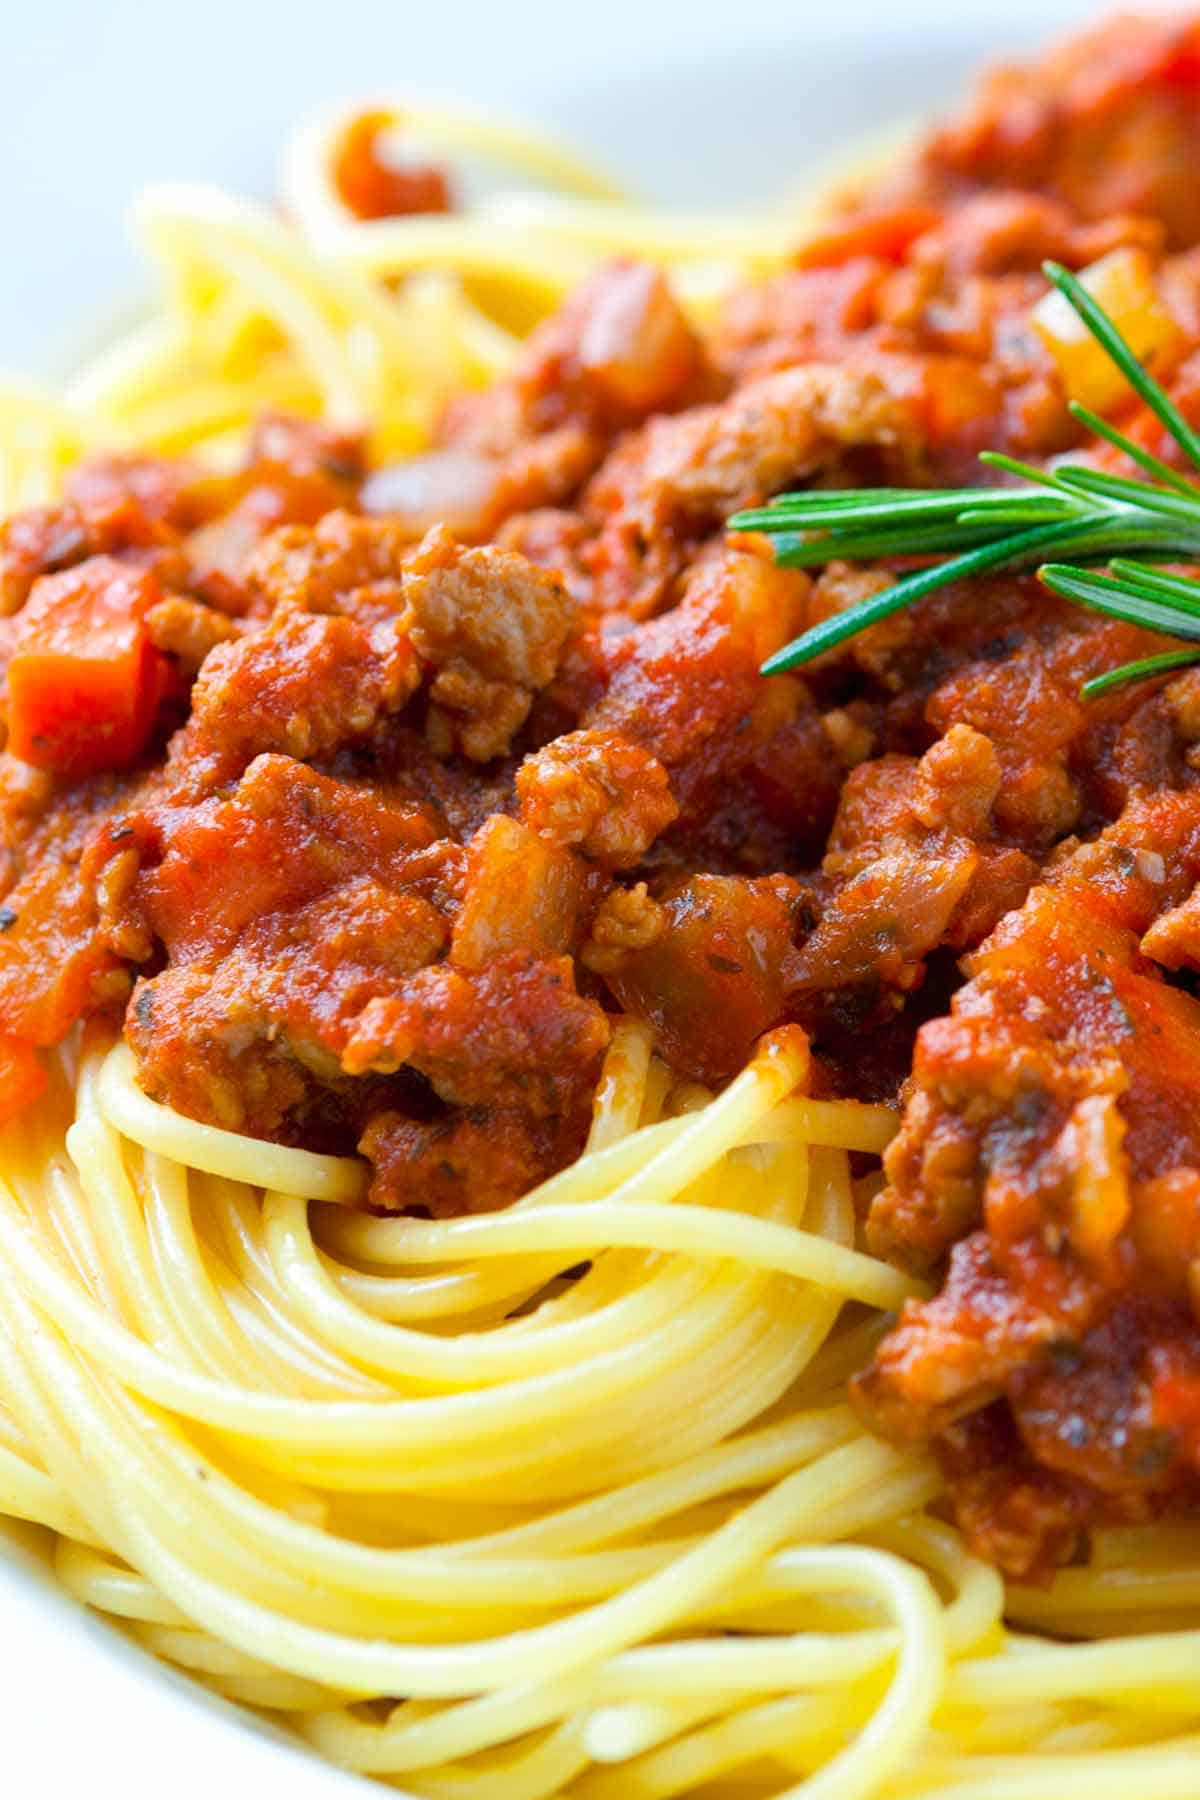 How to Make Ragu with Ground Chicken in 30 Minutes